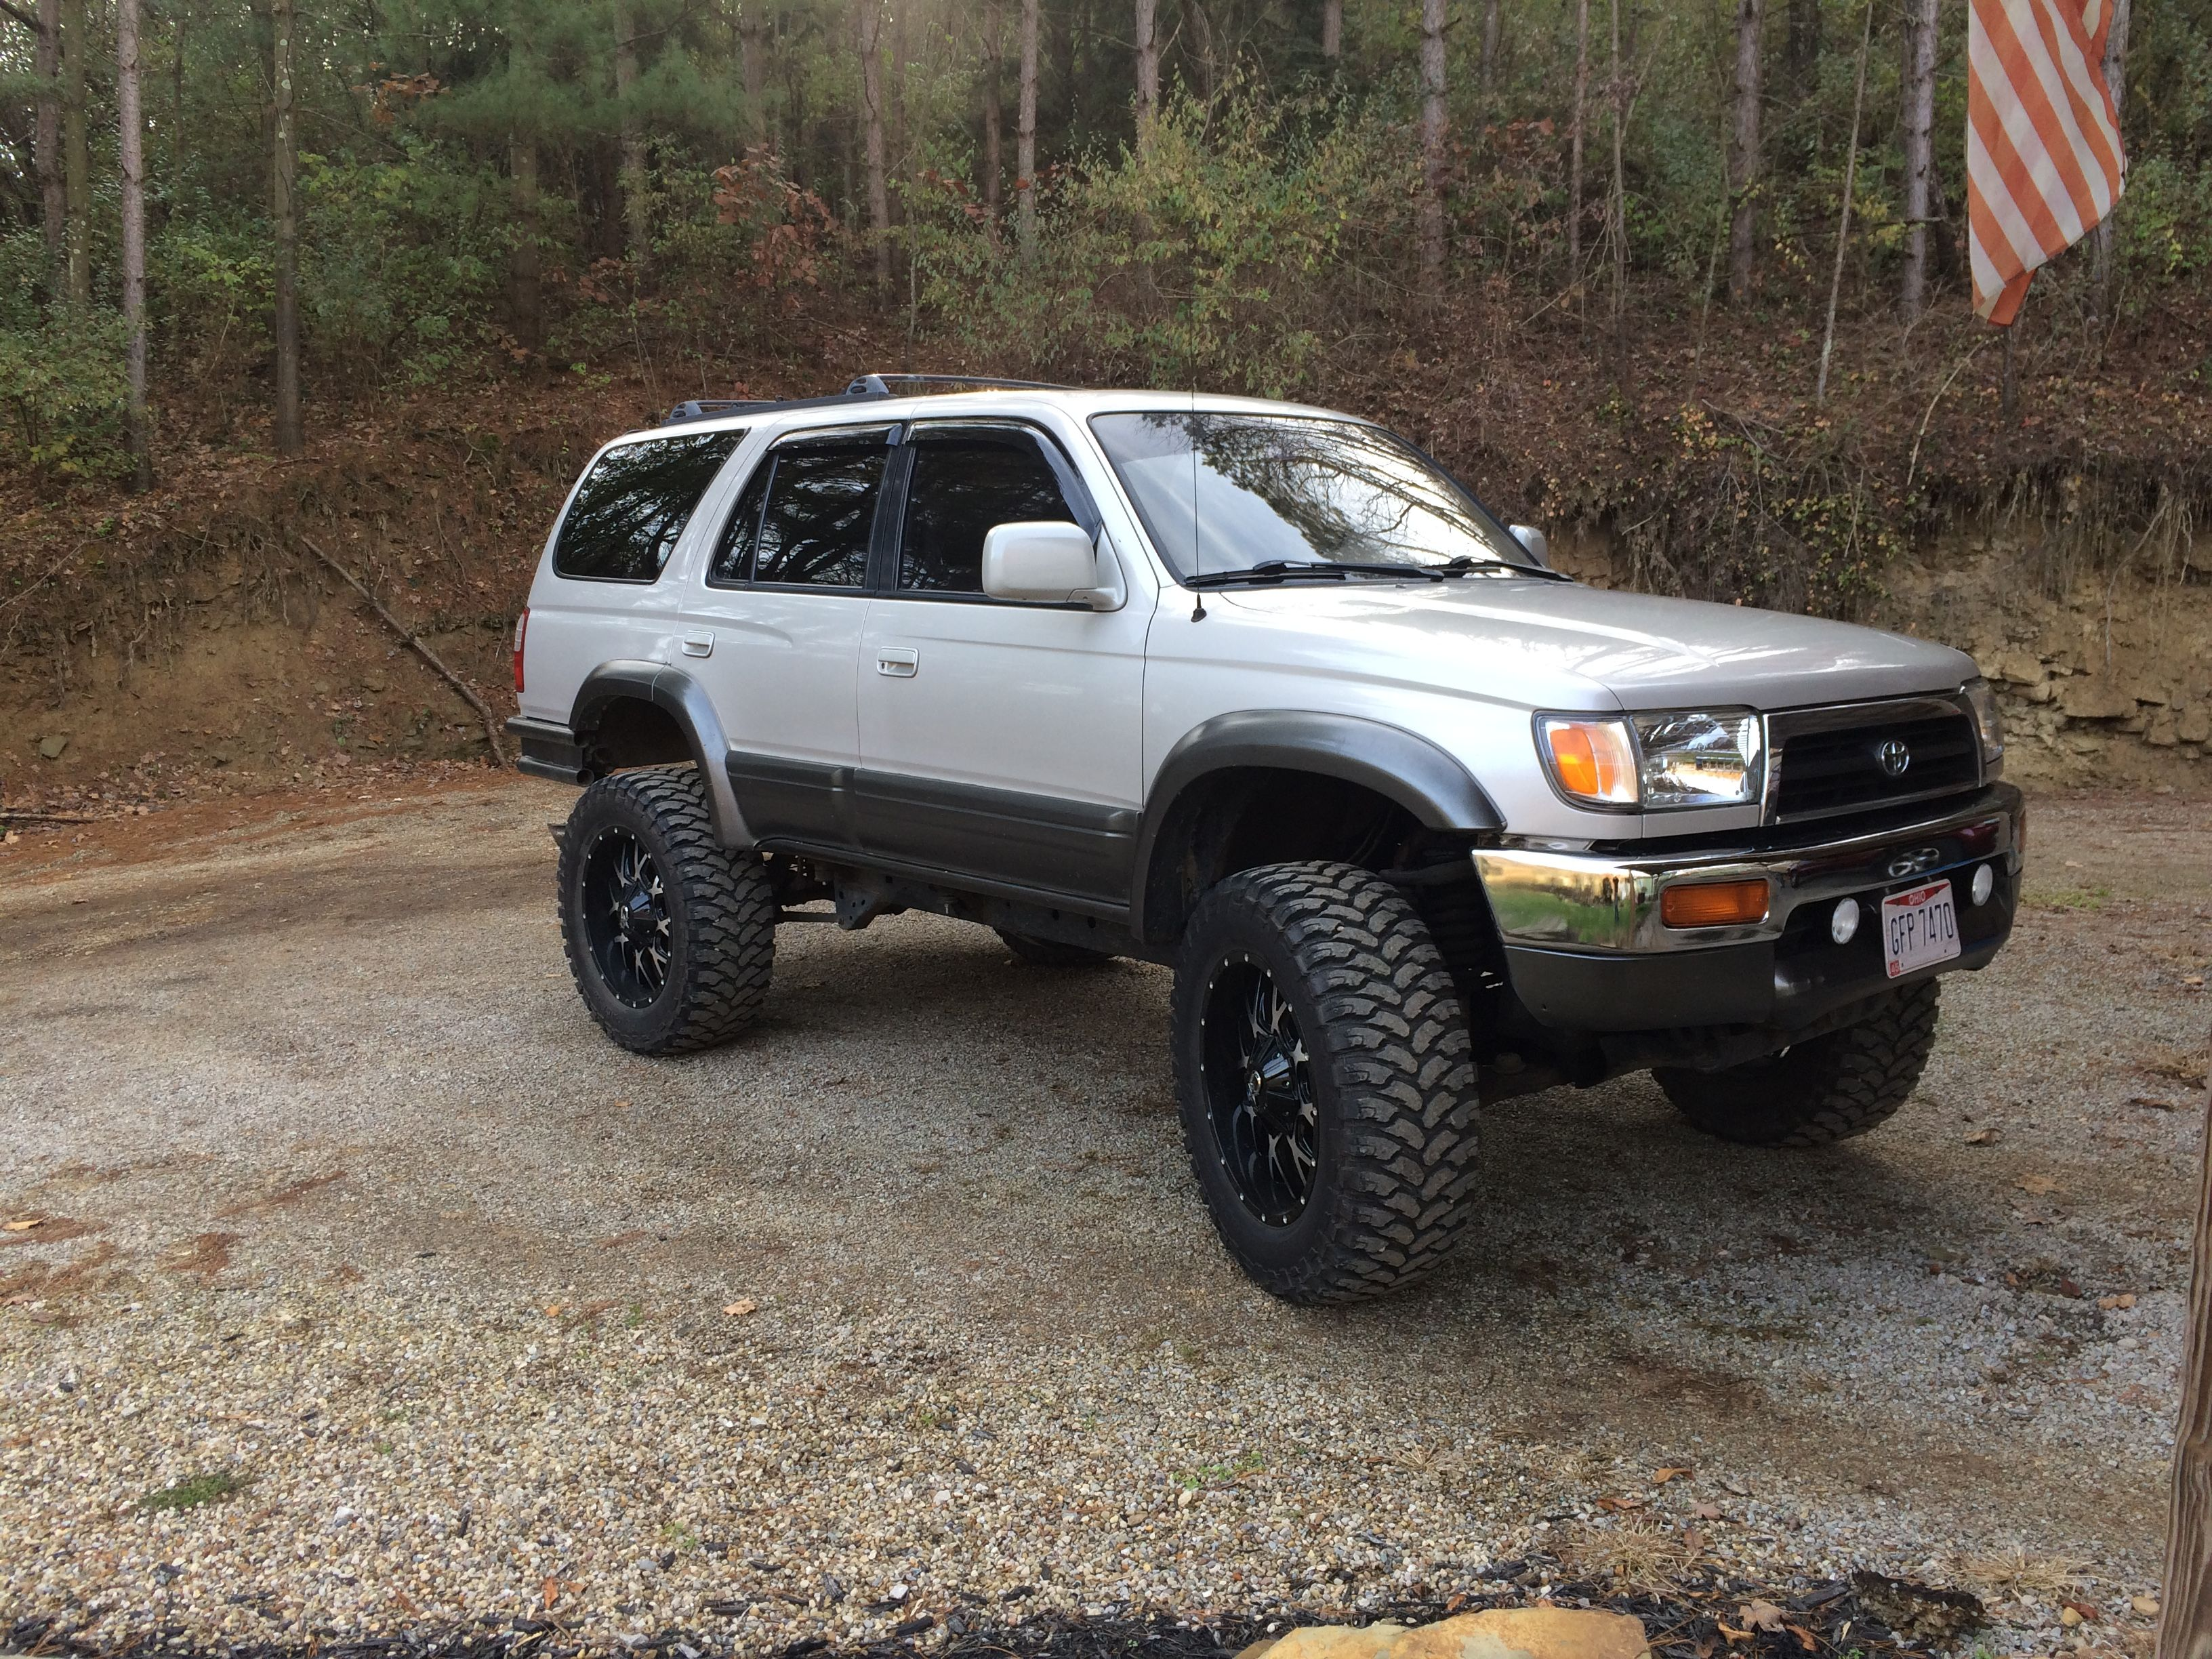 3rd Gen 4runner On 35 S 4runner 3rd Gen 4runner Toyota 4runner